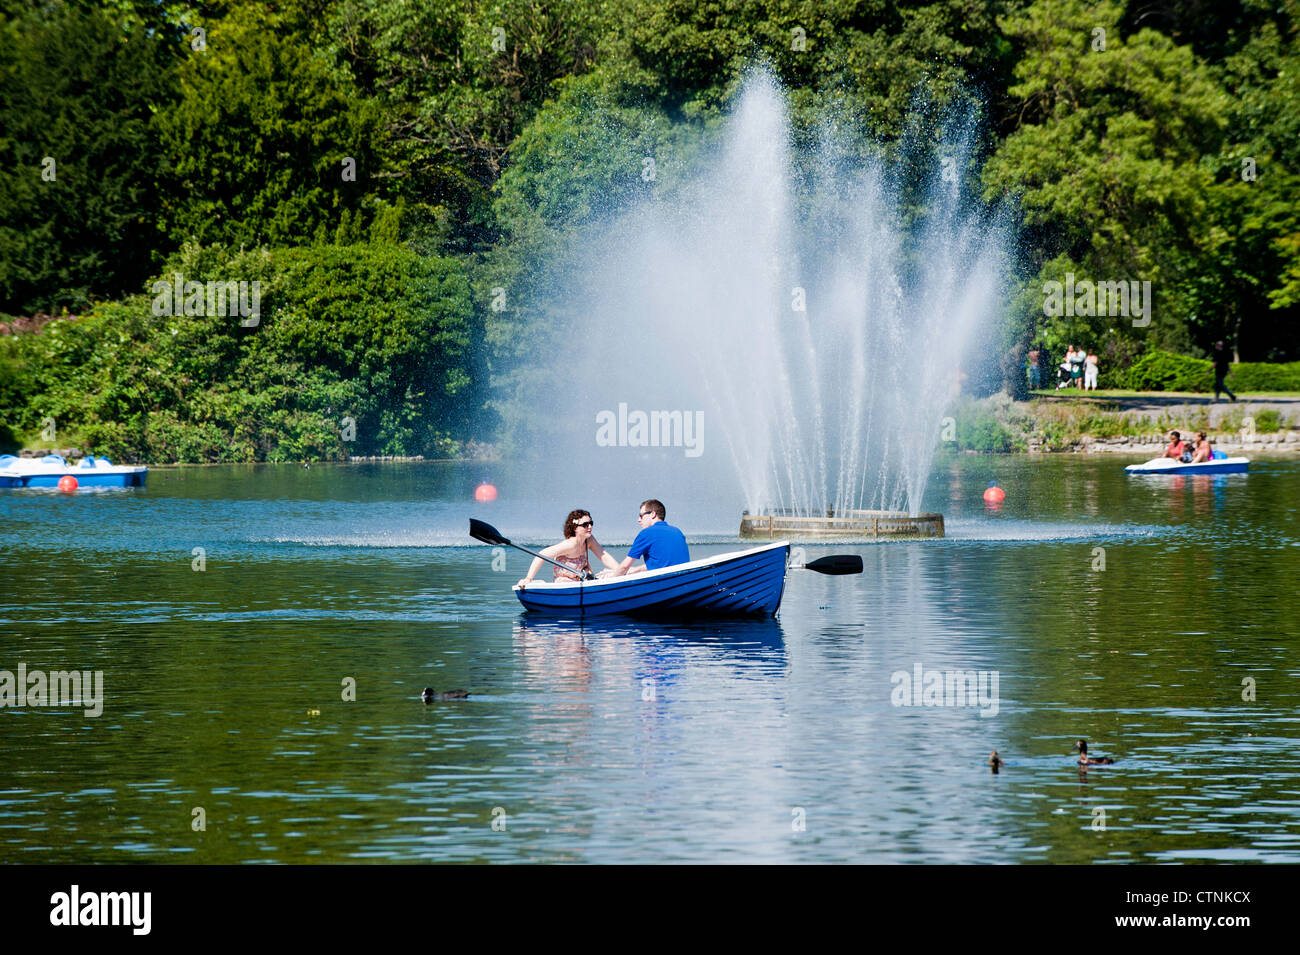 People enjoy boating on hot summer day, Victoria Park, Hackney, London, United Kingdom - Stock Image